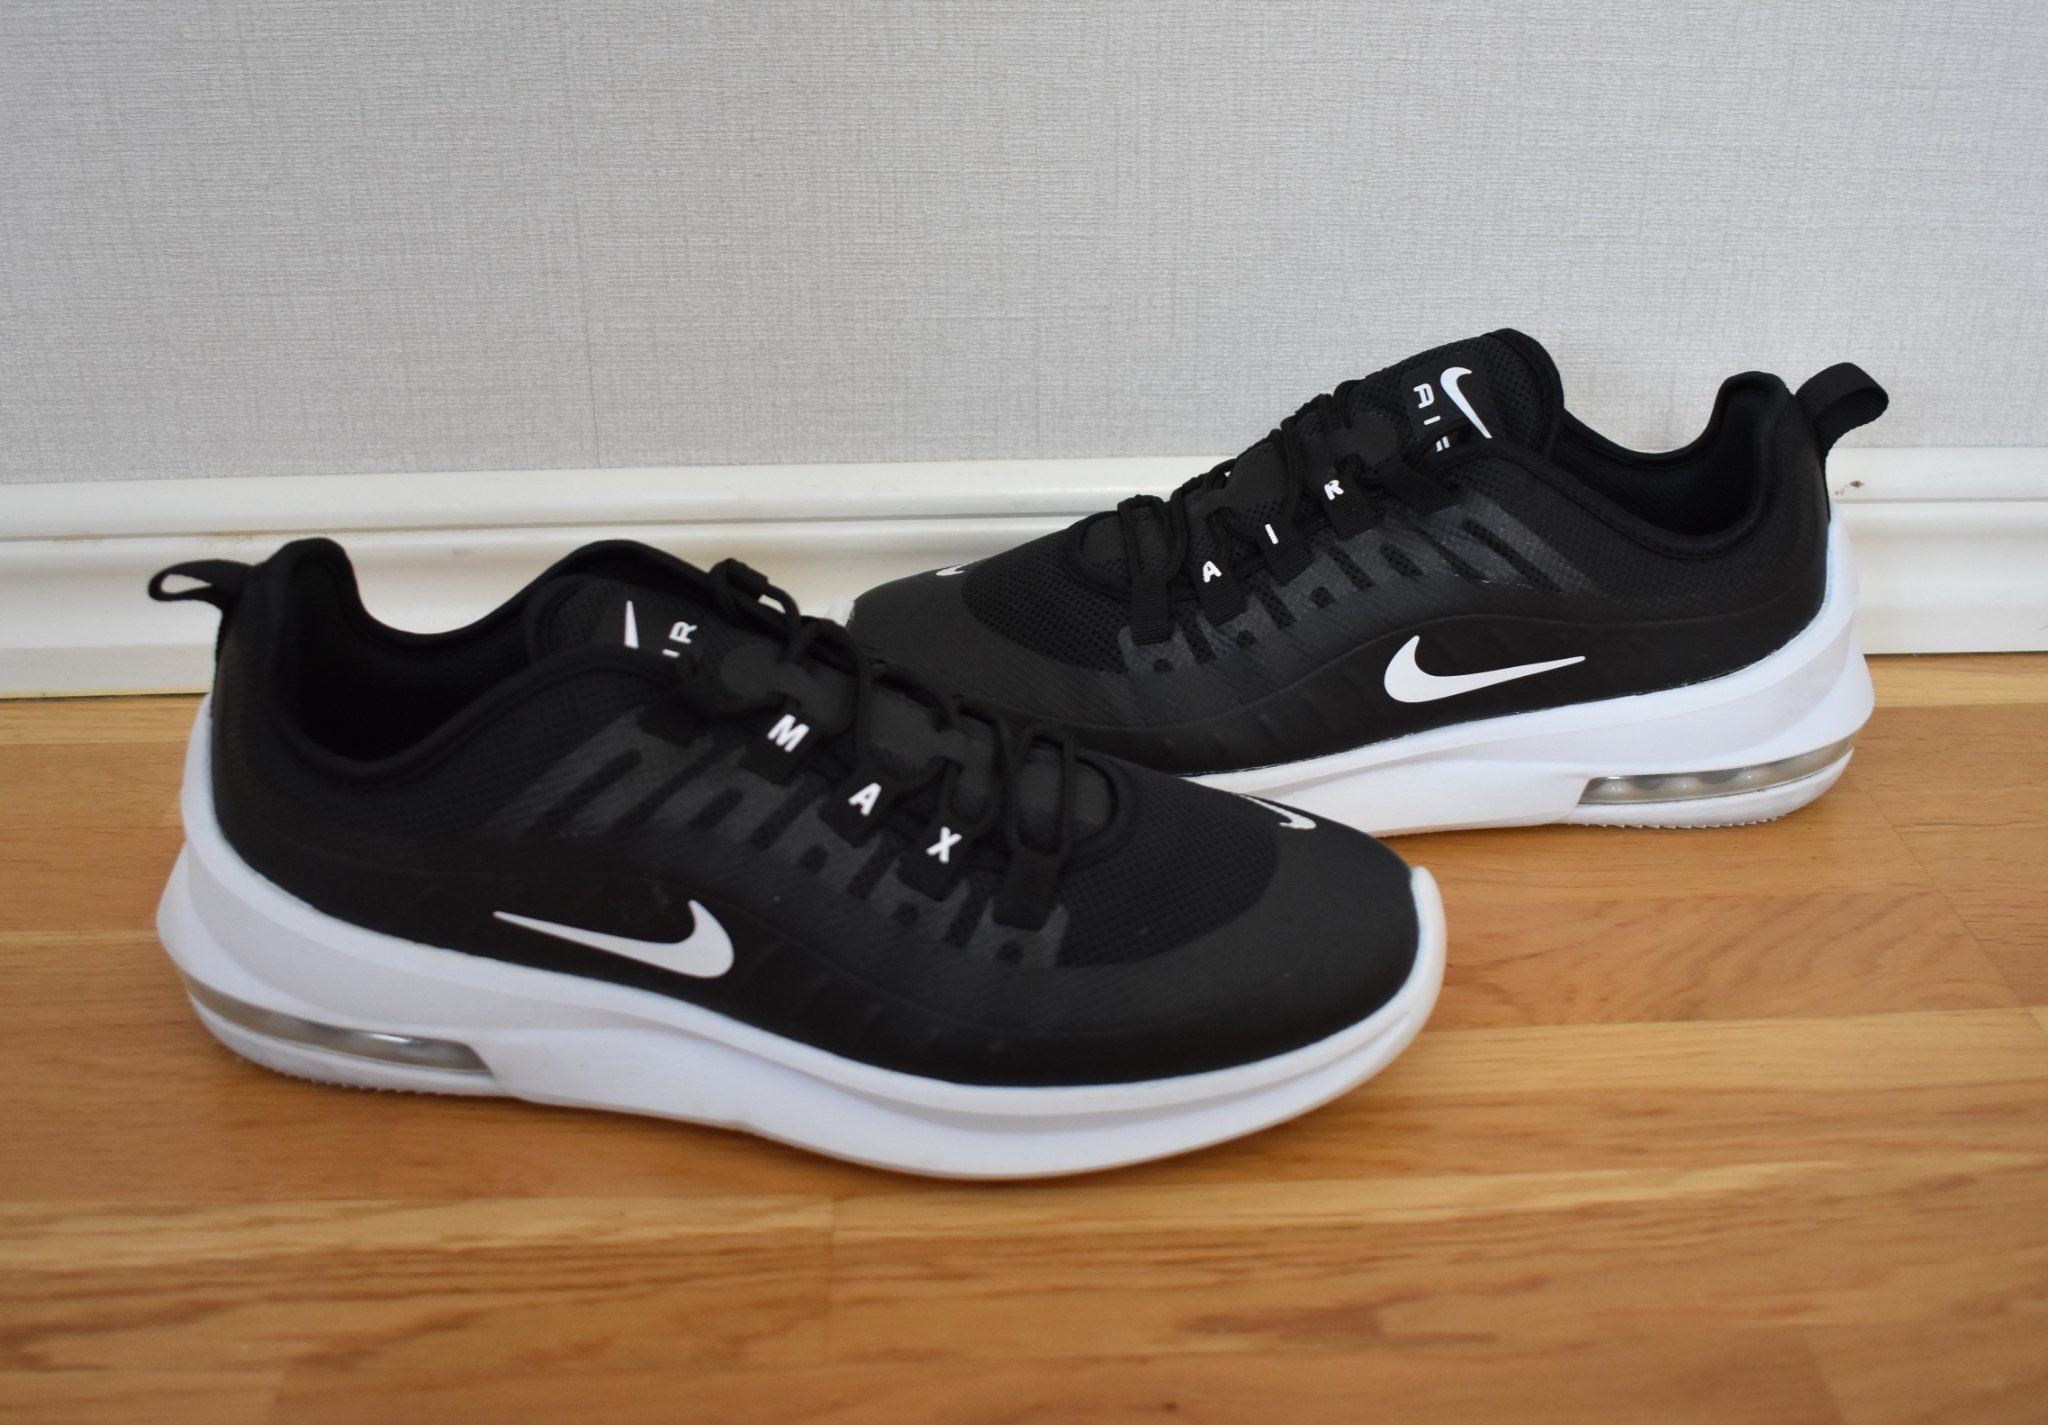 size 40 08509 2cb15 Nya 343854764 Herr Air Nike Max 42 Axis Sneakers 4r4Fwq